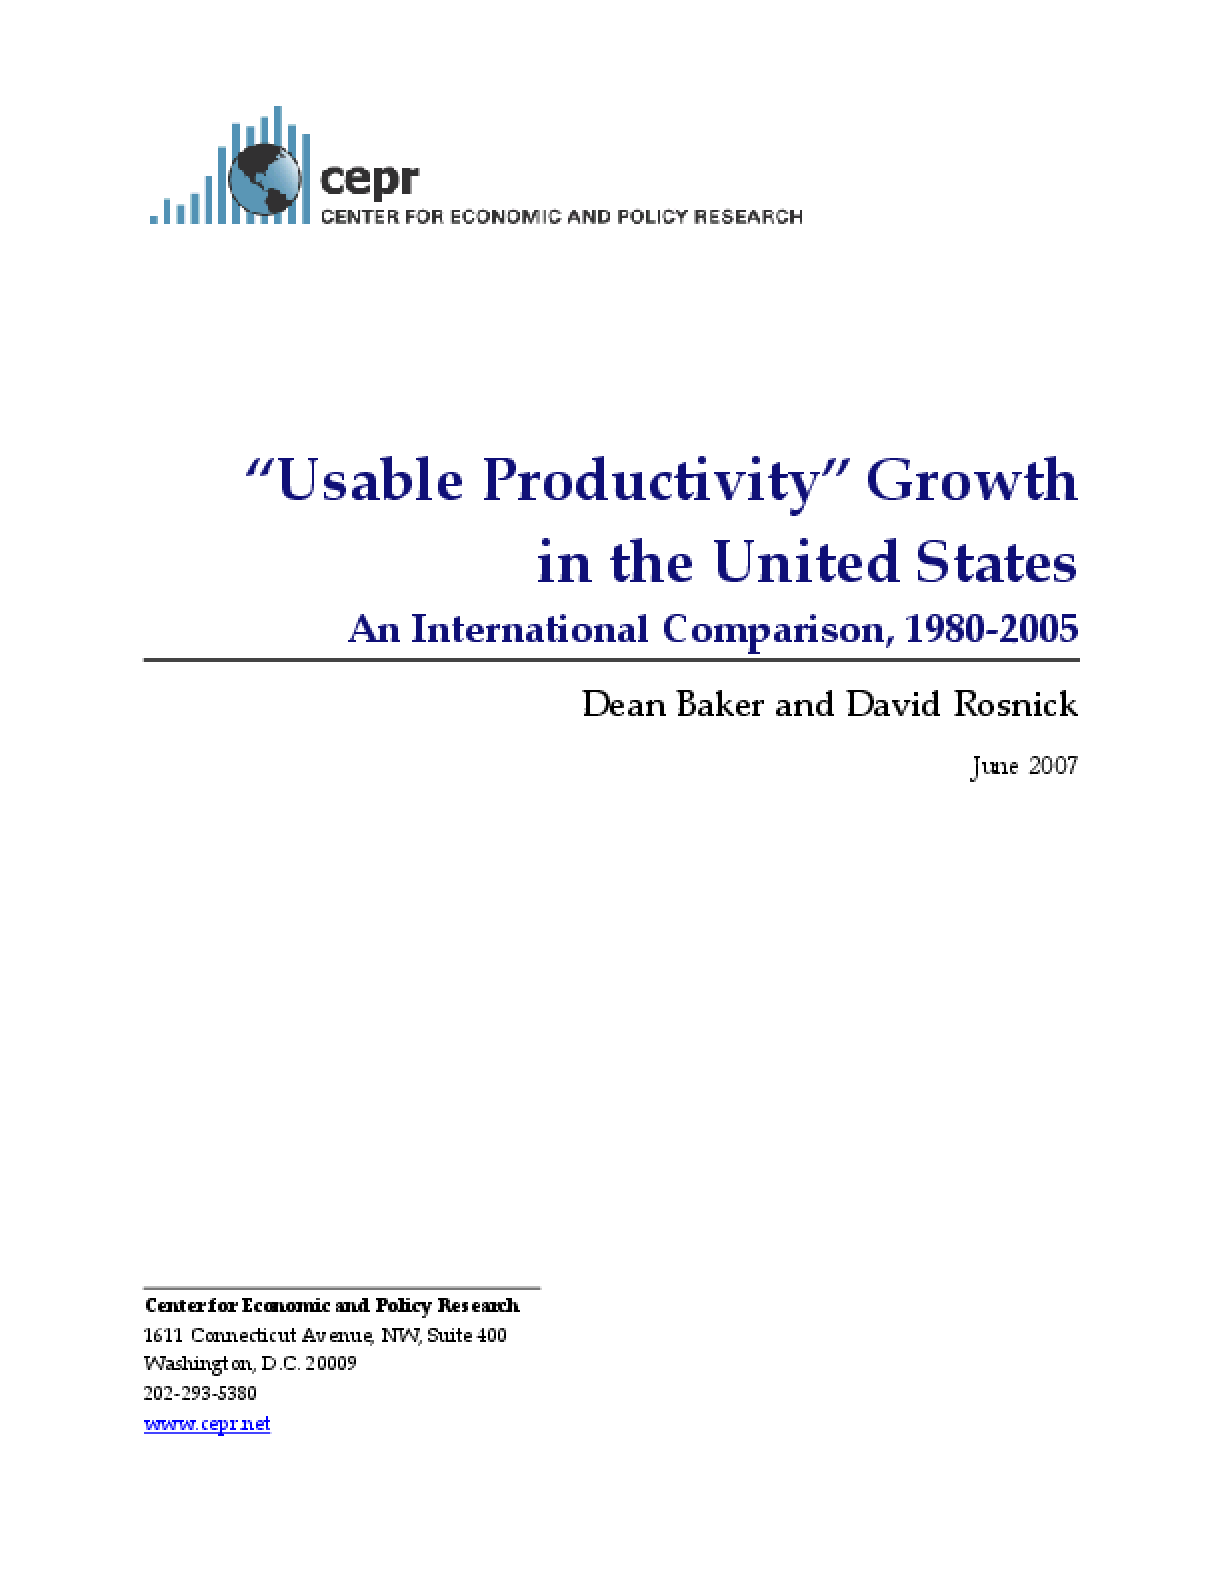 """Usable Productivity"" Growth in the U.S.: An International Comparison, 1980-2005"